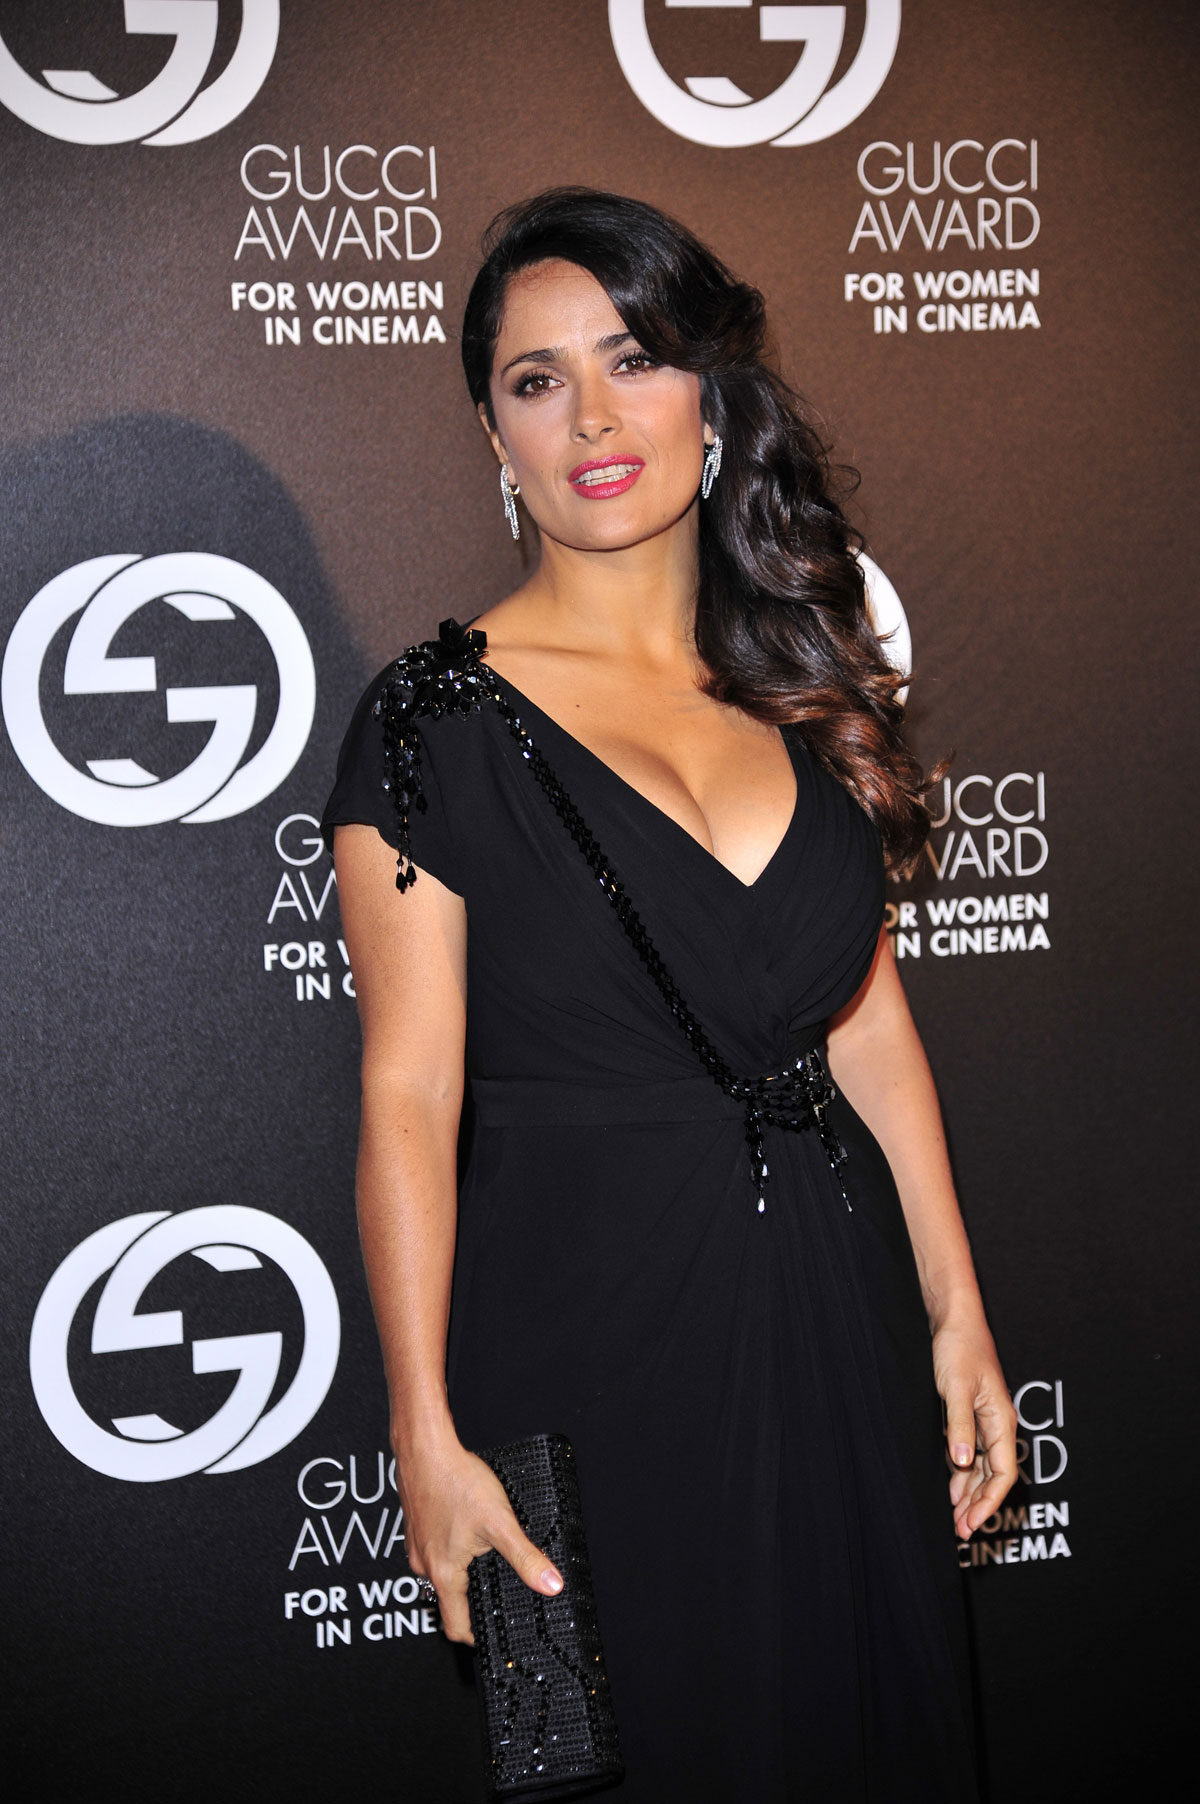 Salma Hayek awards